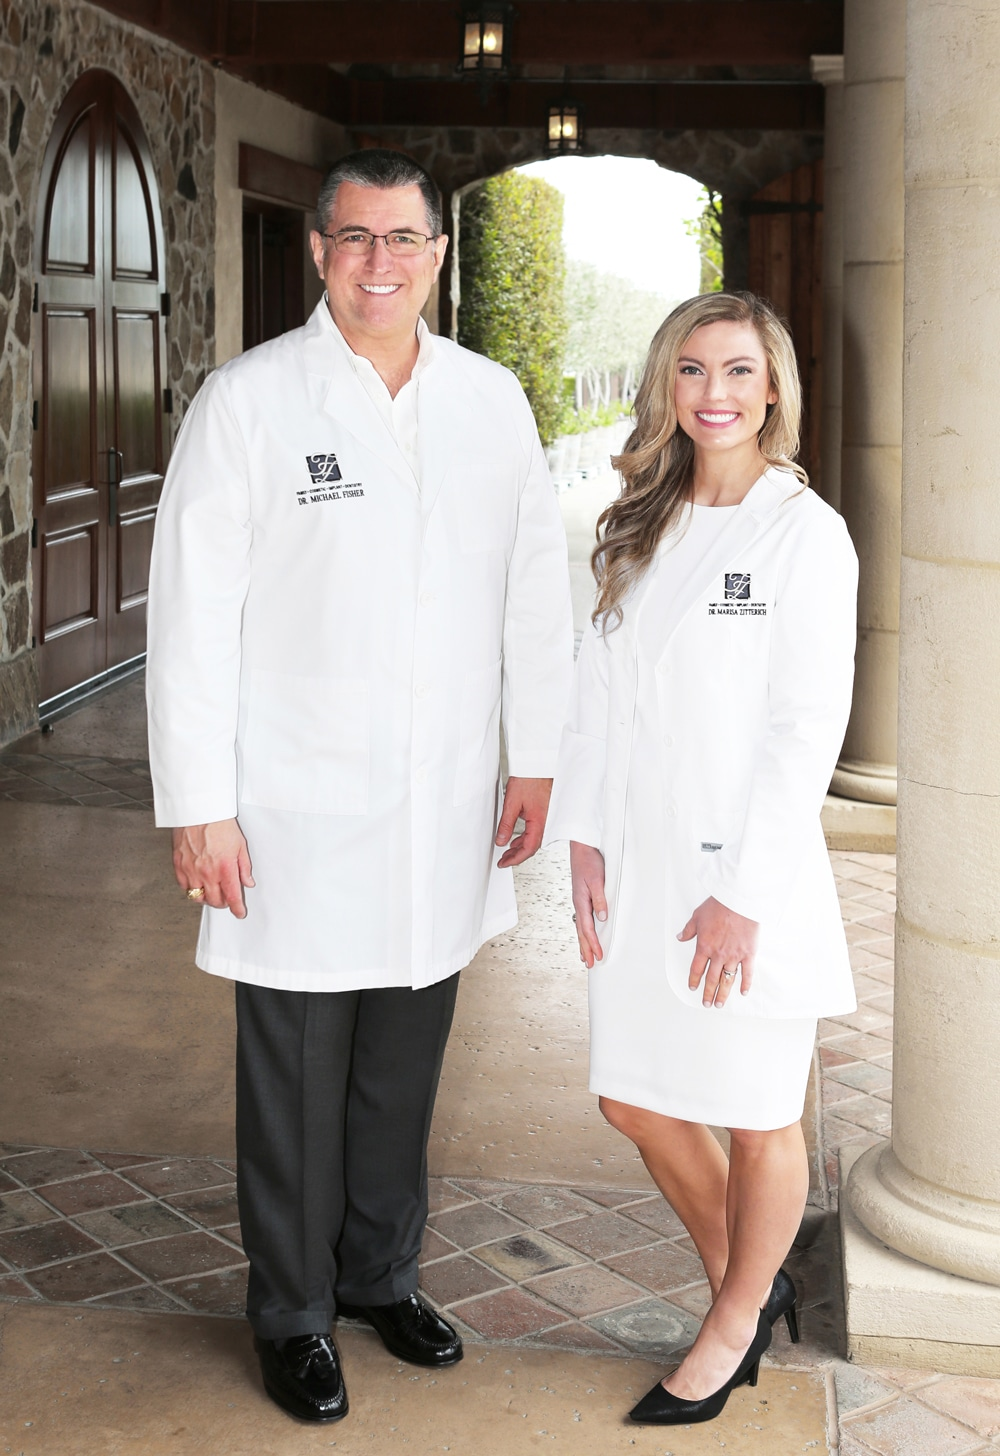 Fisher Zitterich Family, Cosmetic and Implant Dentistry